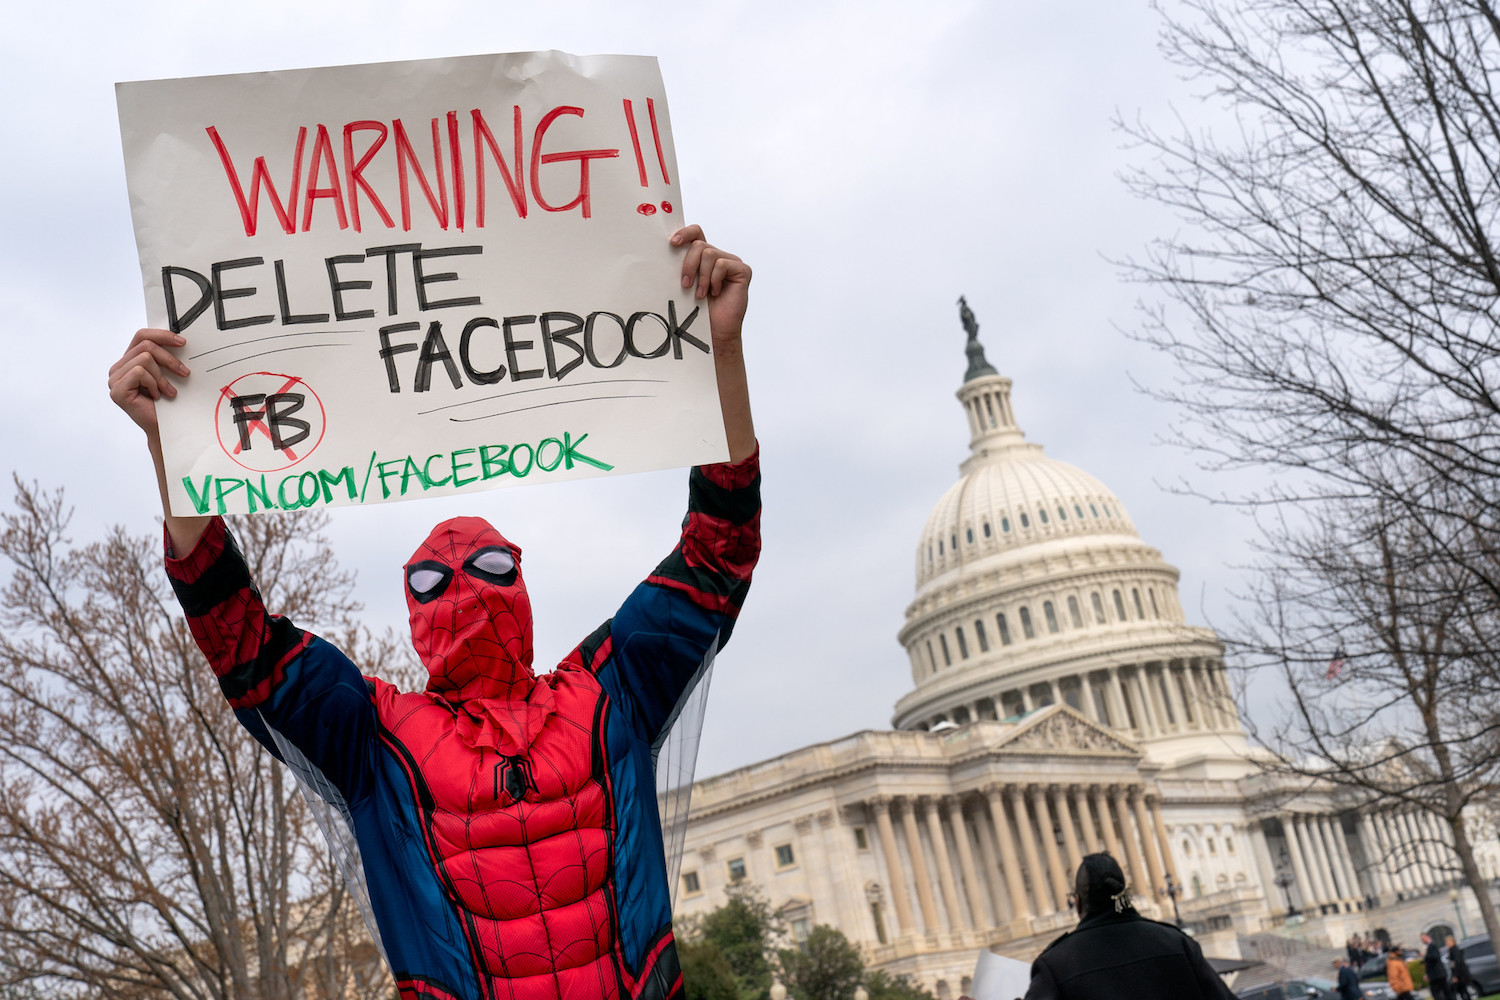 A protester dressed as Spiderman demonstrates against Facebook, Washington DC. (Lorie Shaull/CC BY-SA 2.0)